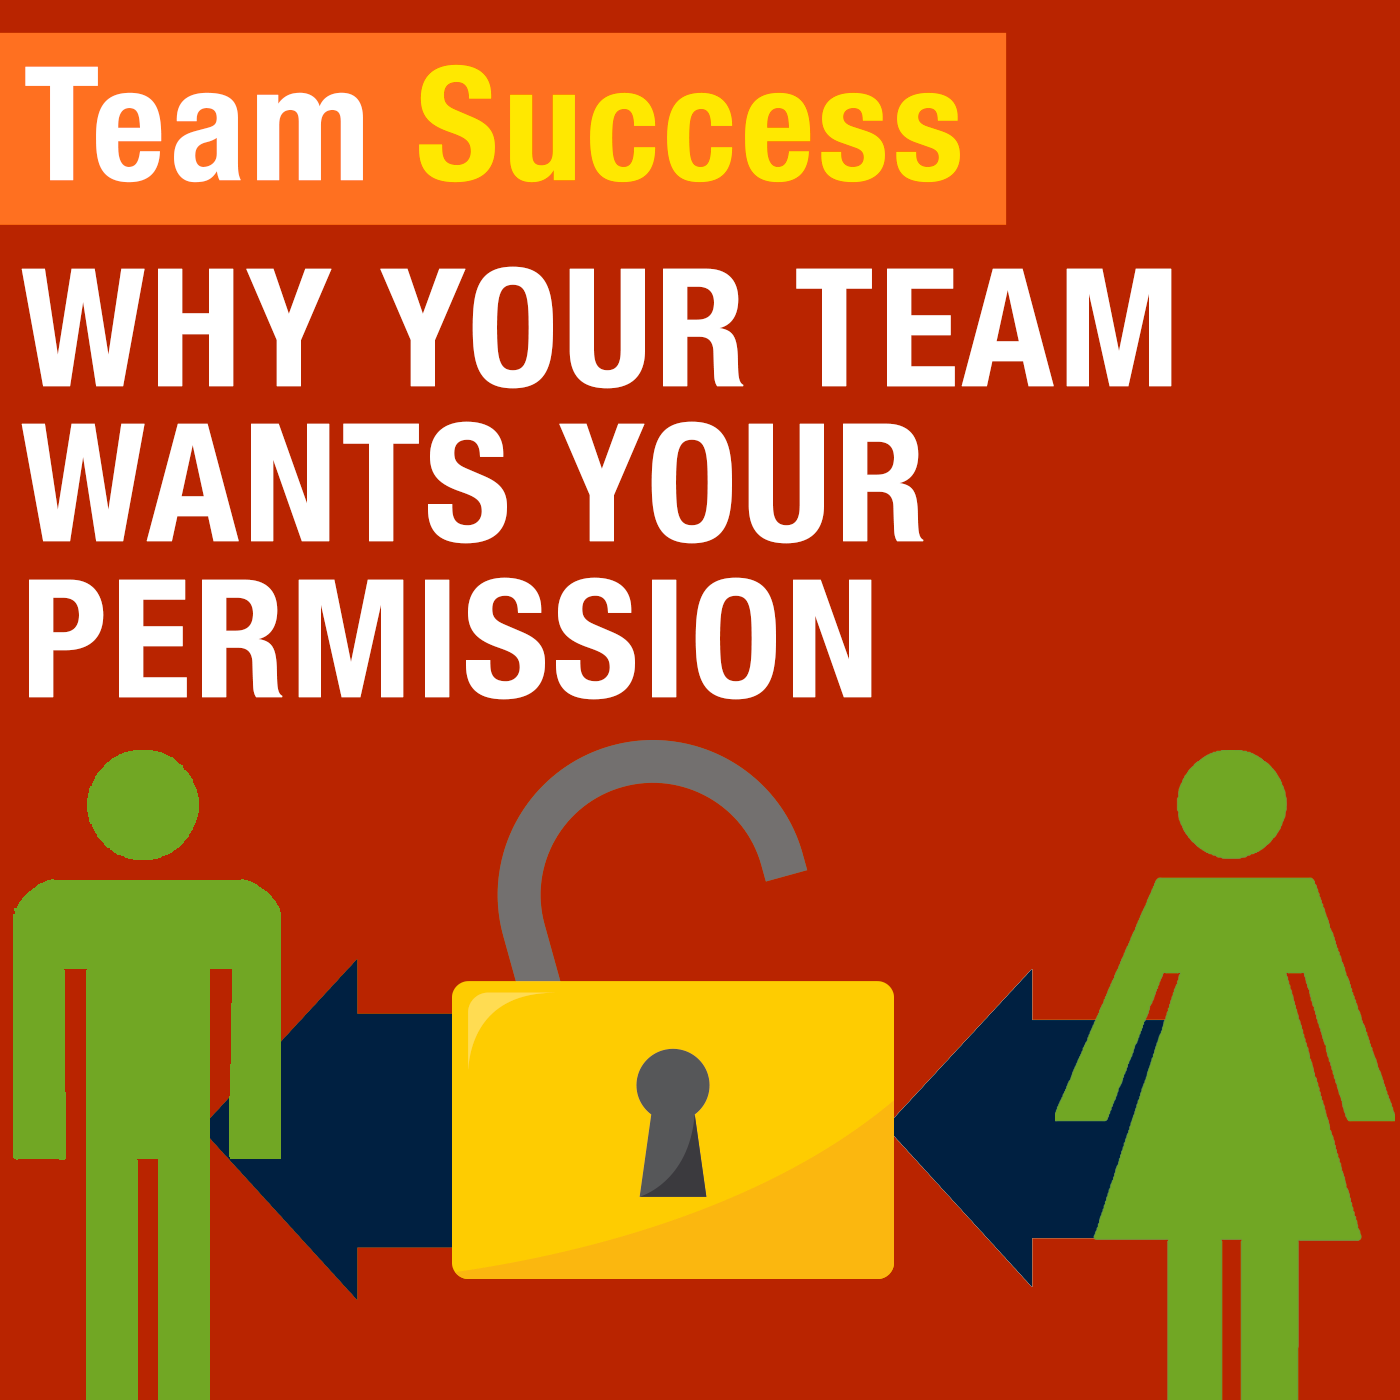 Why Your Team Wants Your Permission